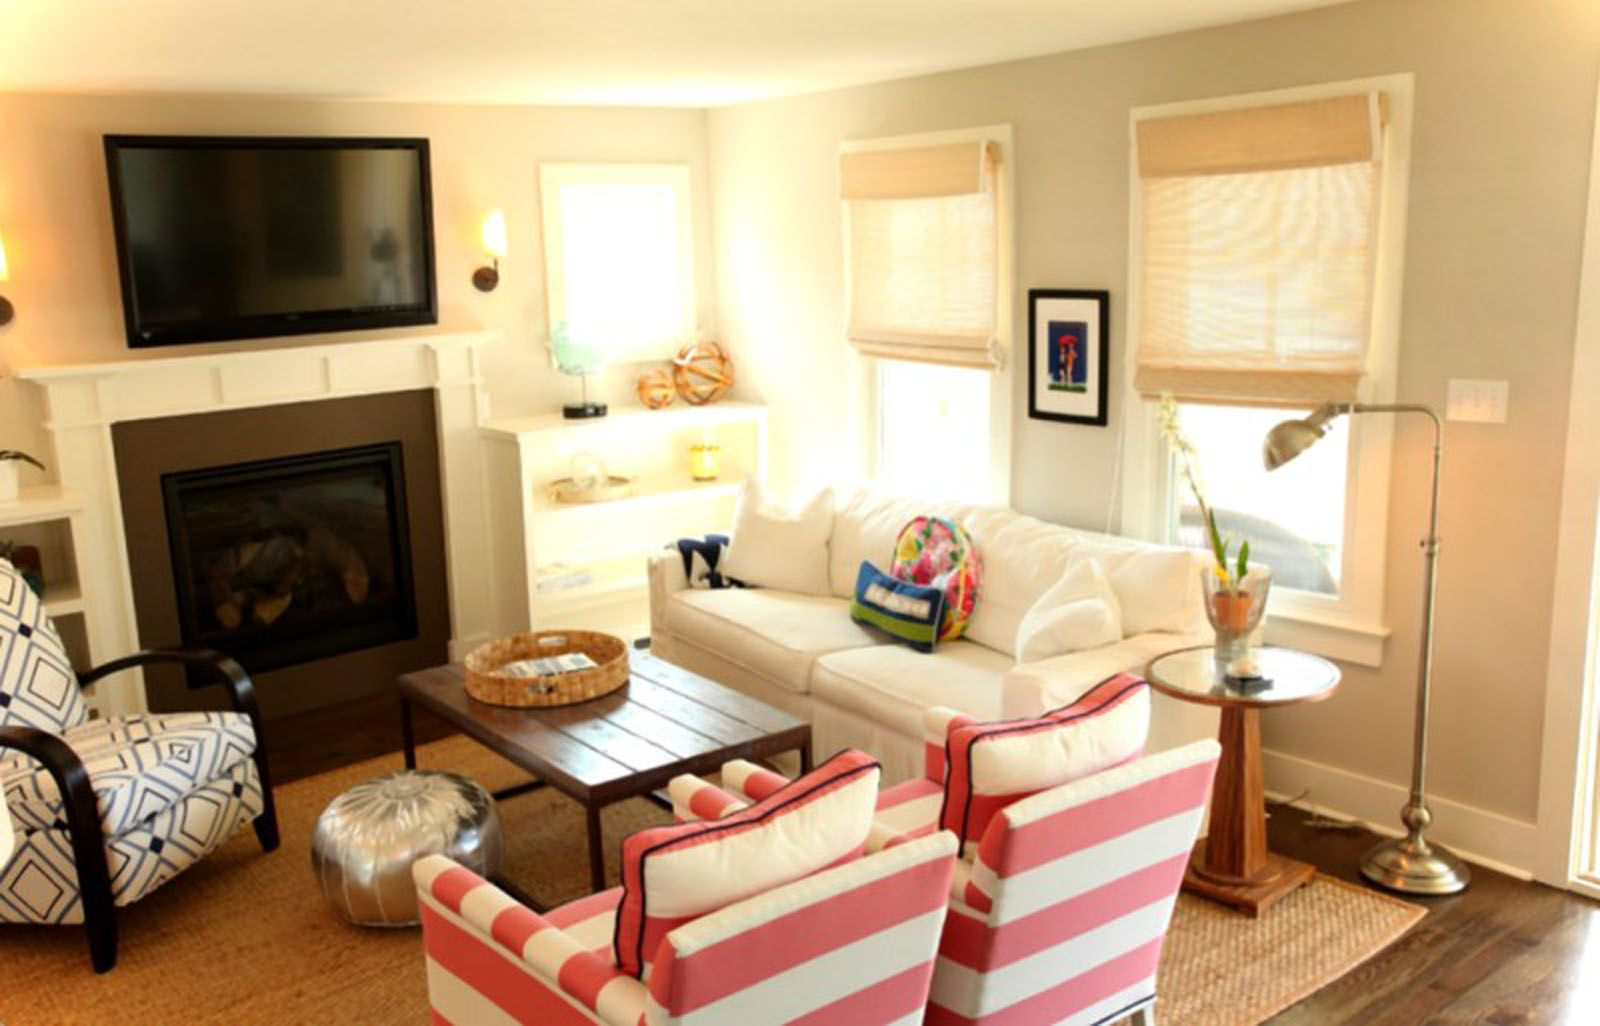 Exquisite How To Arrange Living Room Furniture With